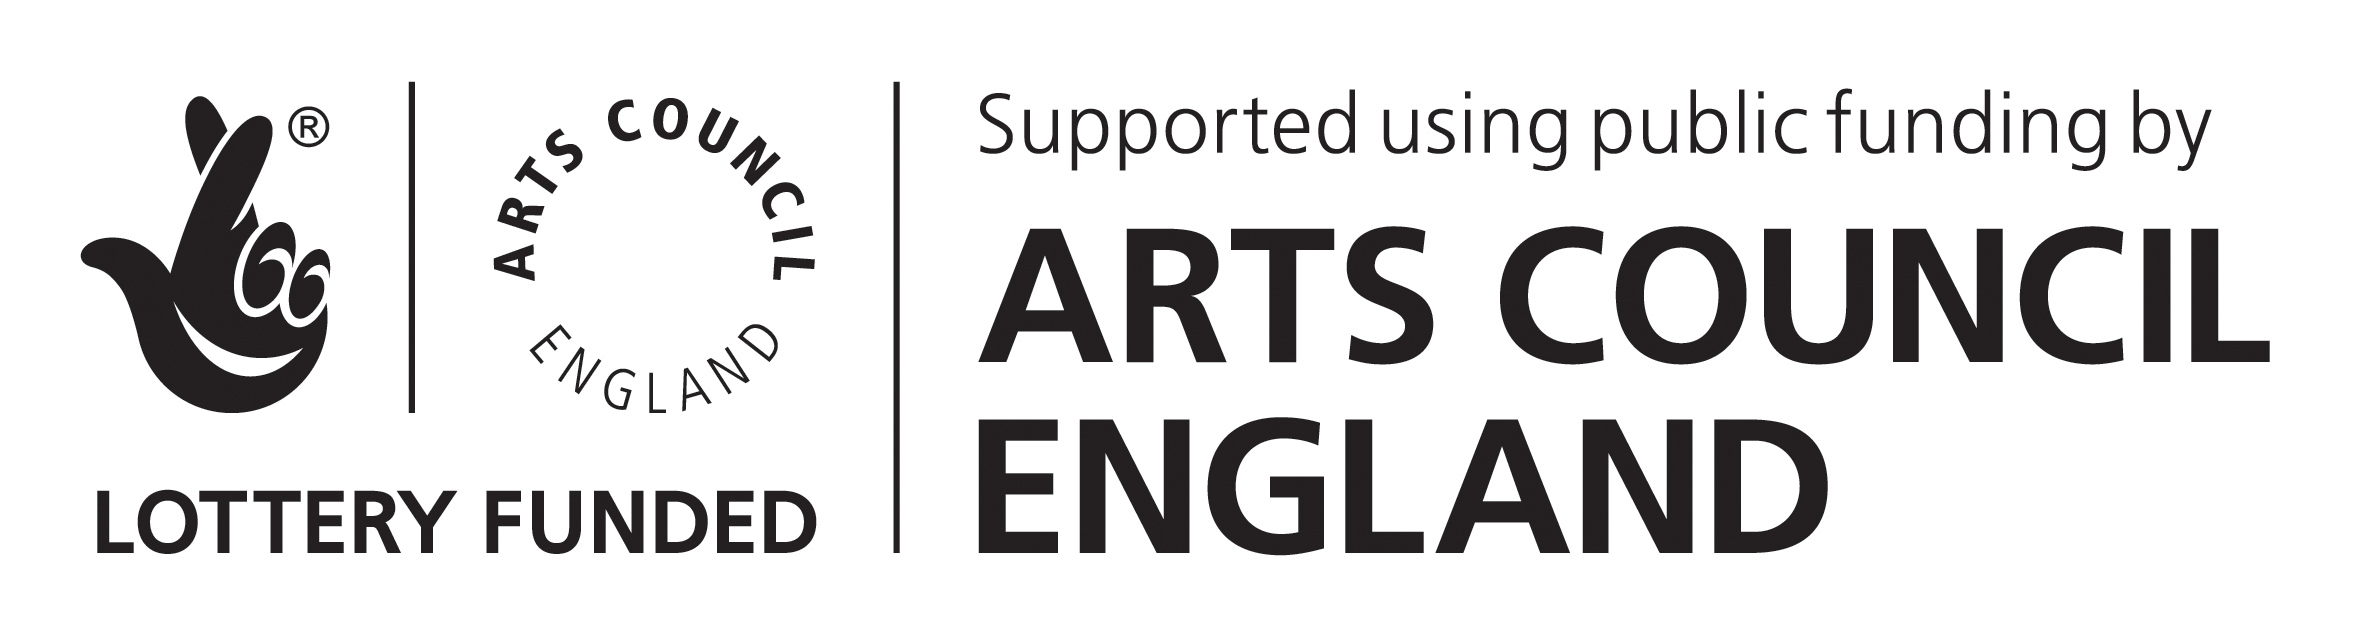 Music funding Arts Council